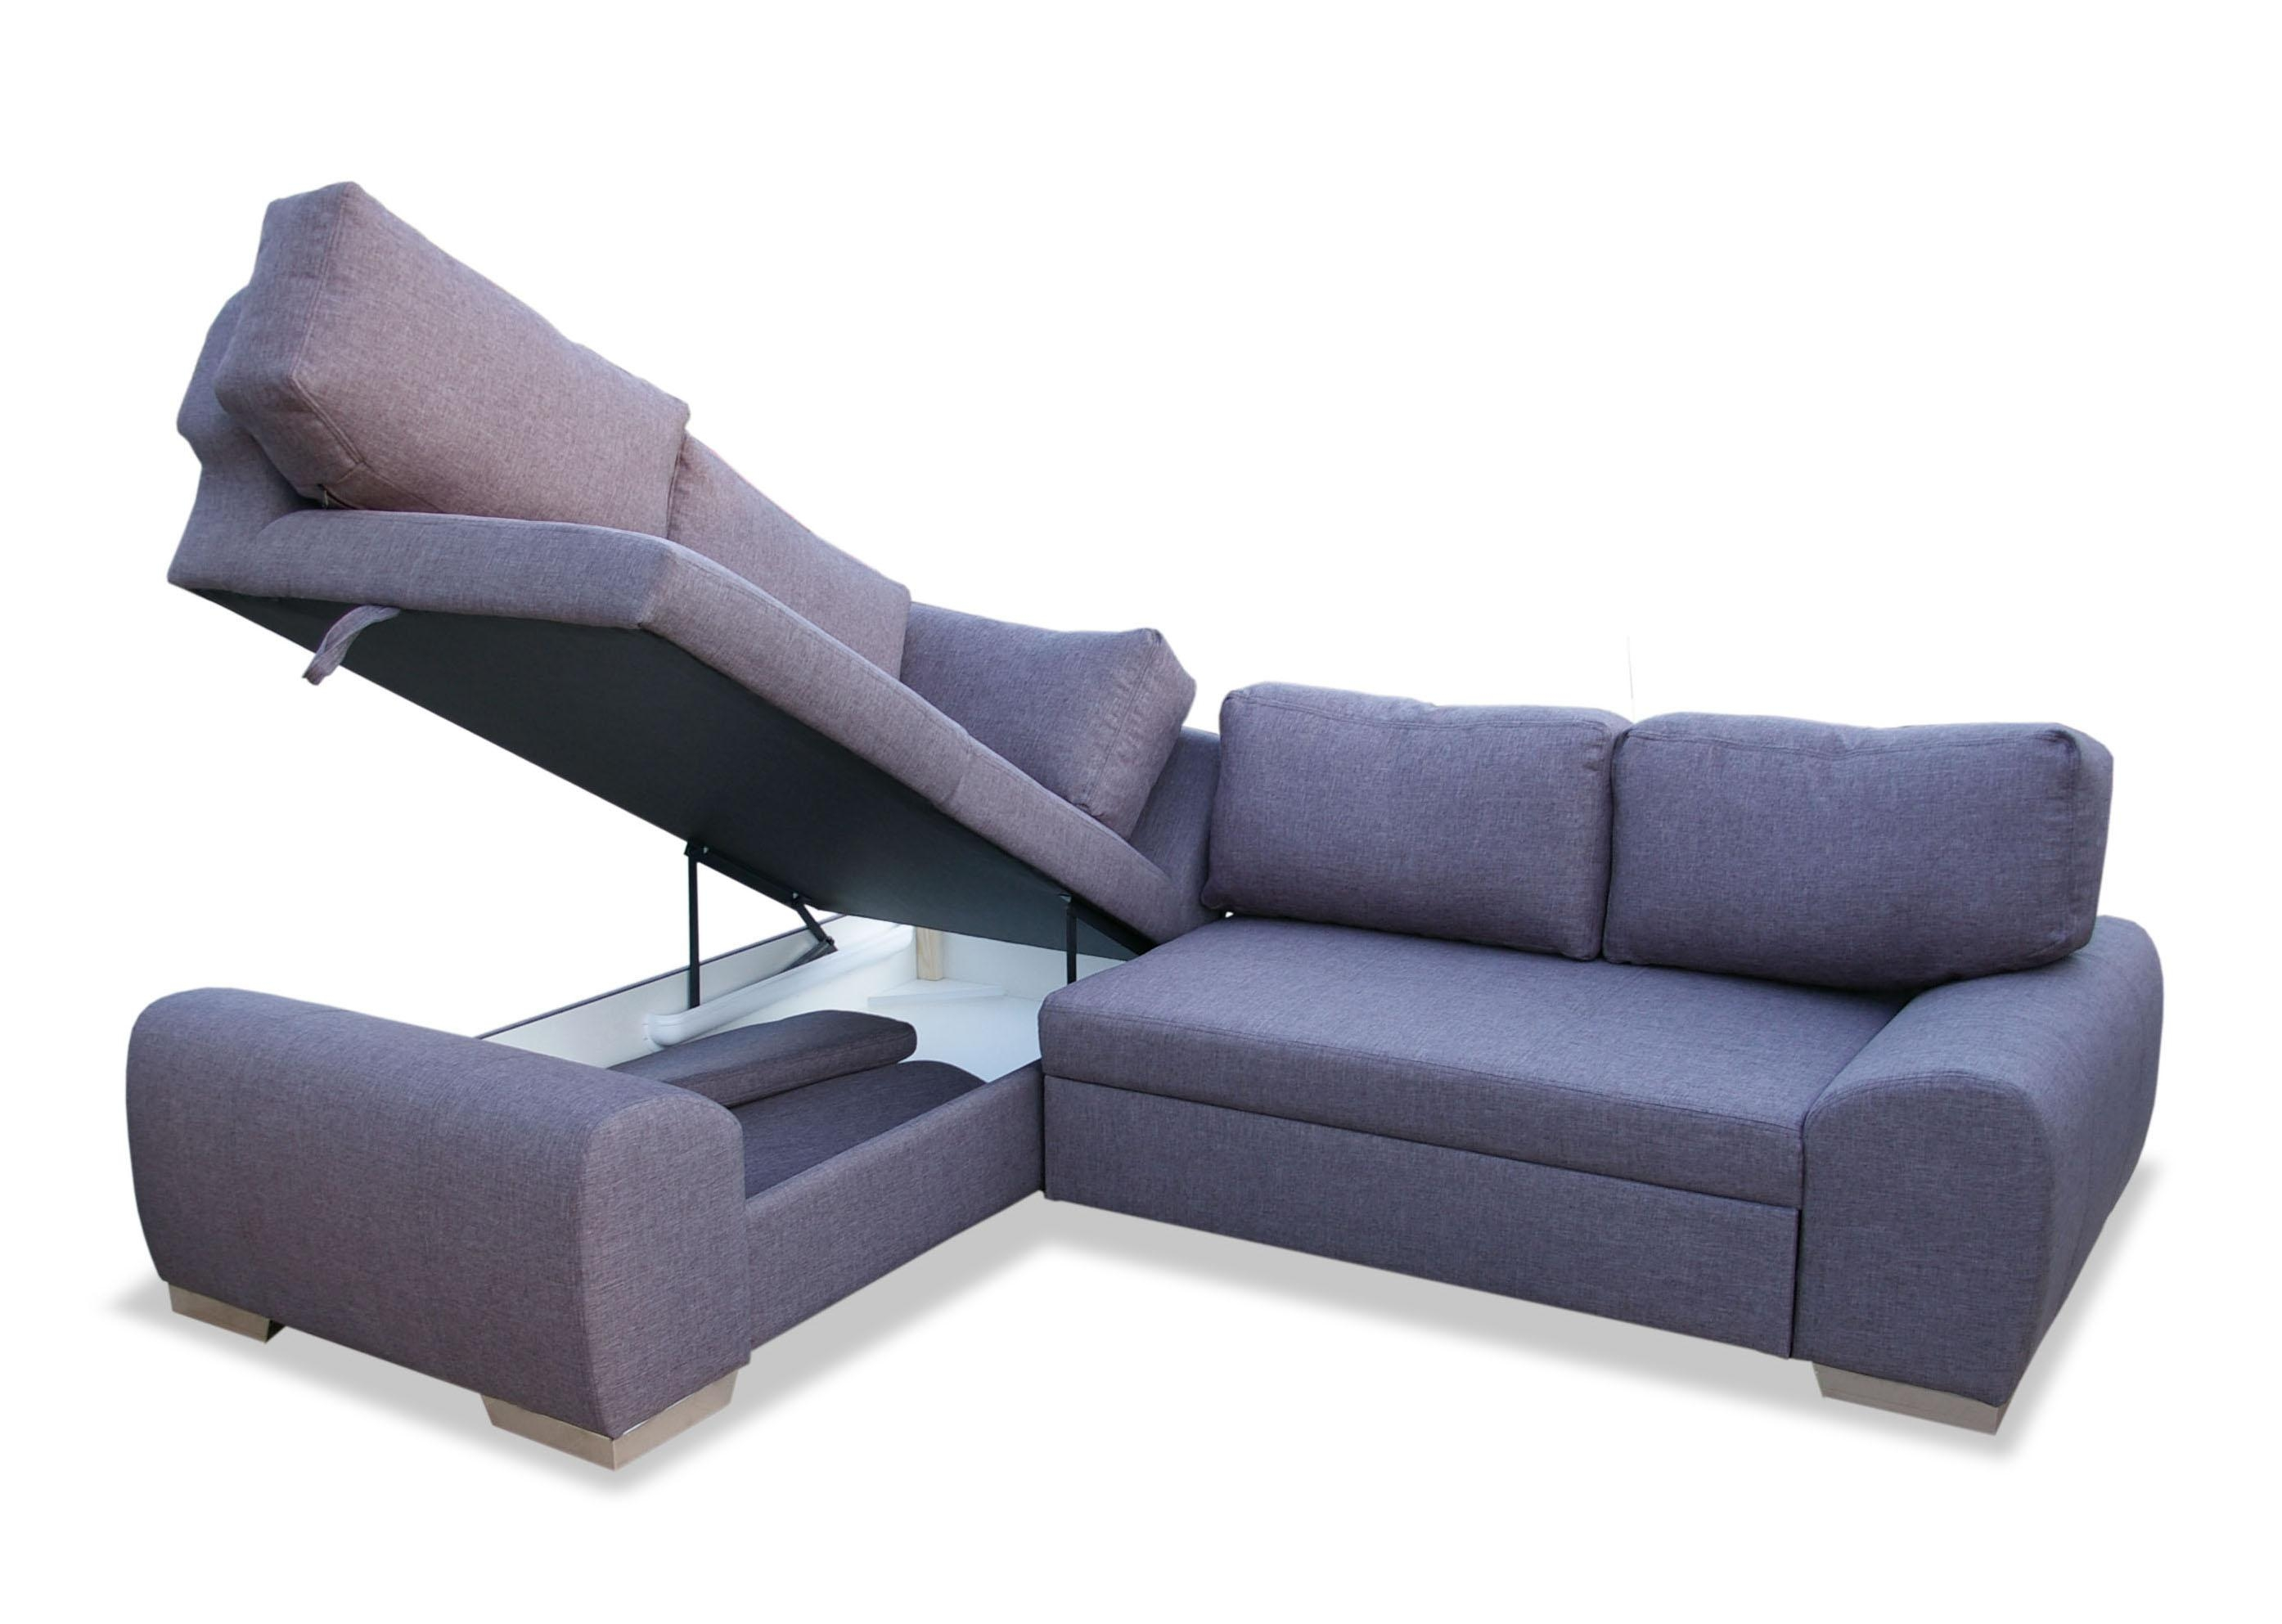 Sofas Center : Awesome Sofar With Storage For Movie Nights In With Regard To Sectional Sofa With Storage (View 10 of 20)